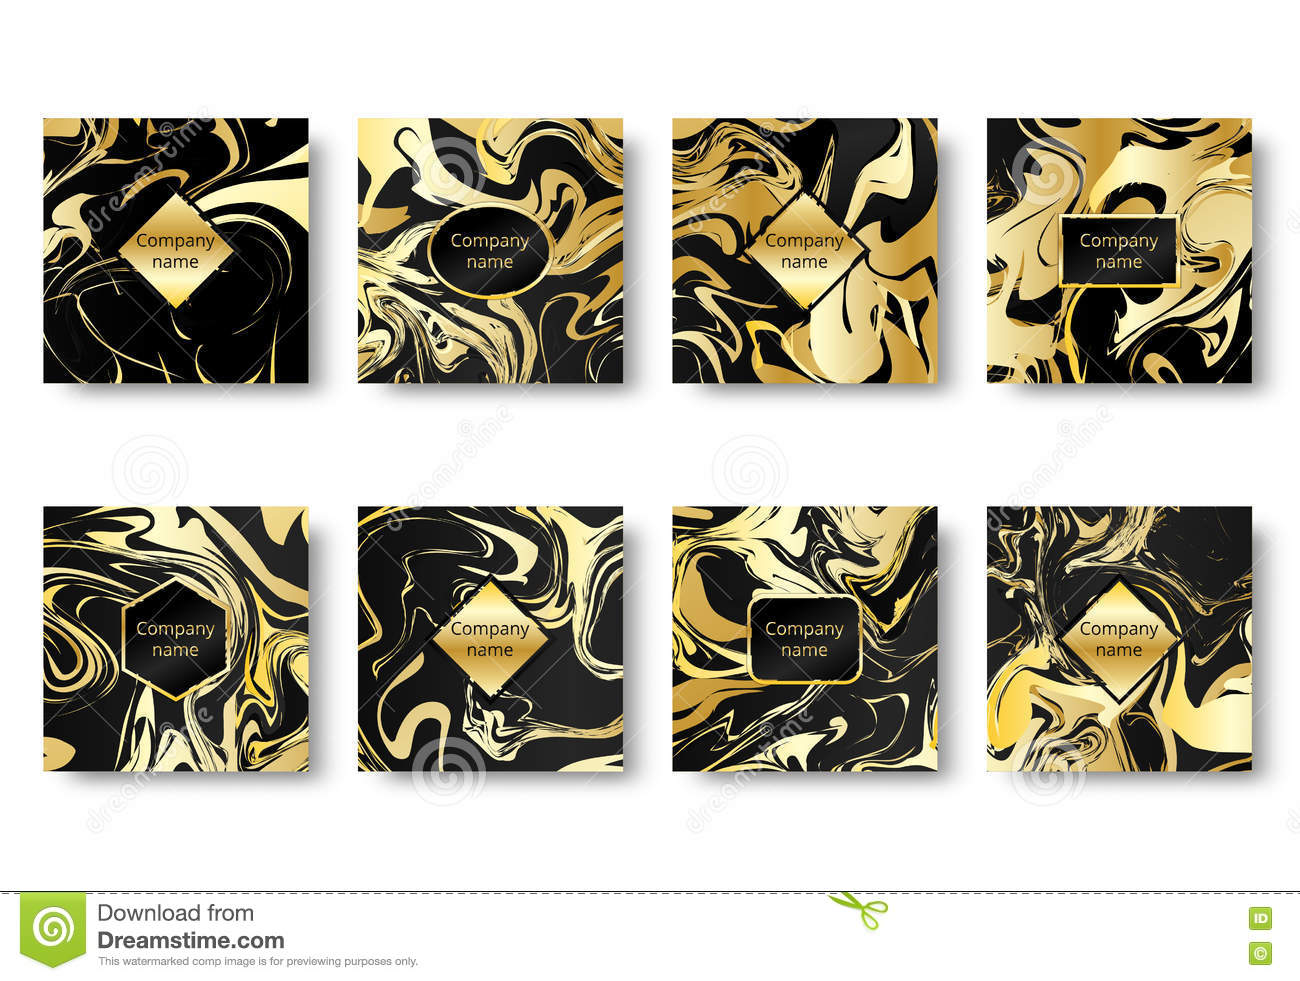 Great Wallpaper Marble Print - banner-marble-print-card-wallpaper-christmas-illustration-gold-ornament-vintage-art-abstract-design-pattern-hipster-background-81764155  Gallery_463097.jpg